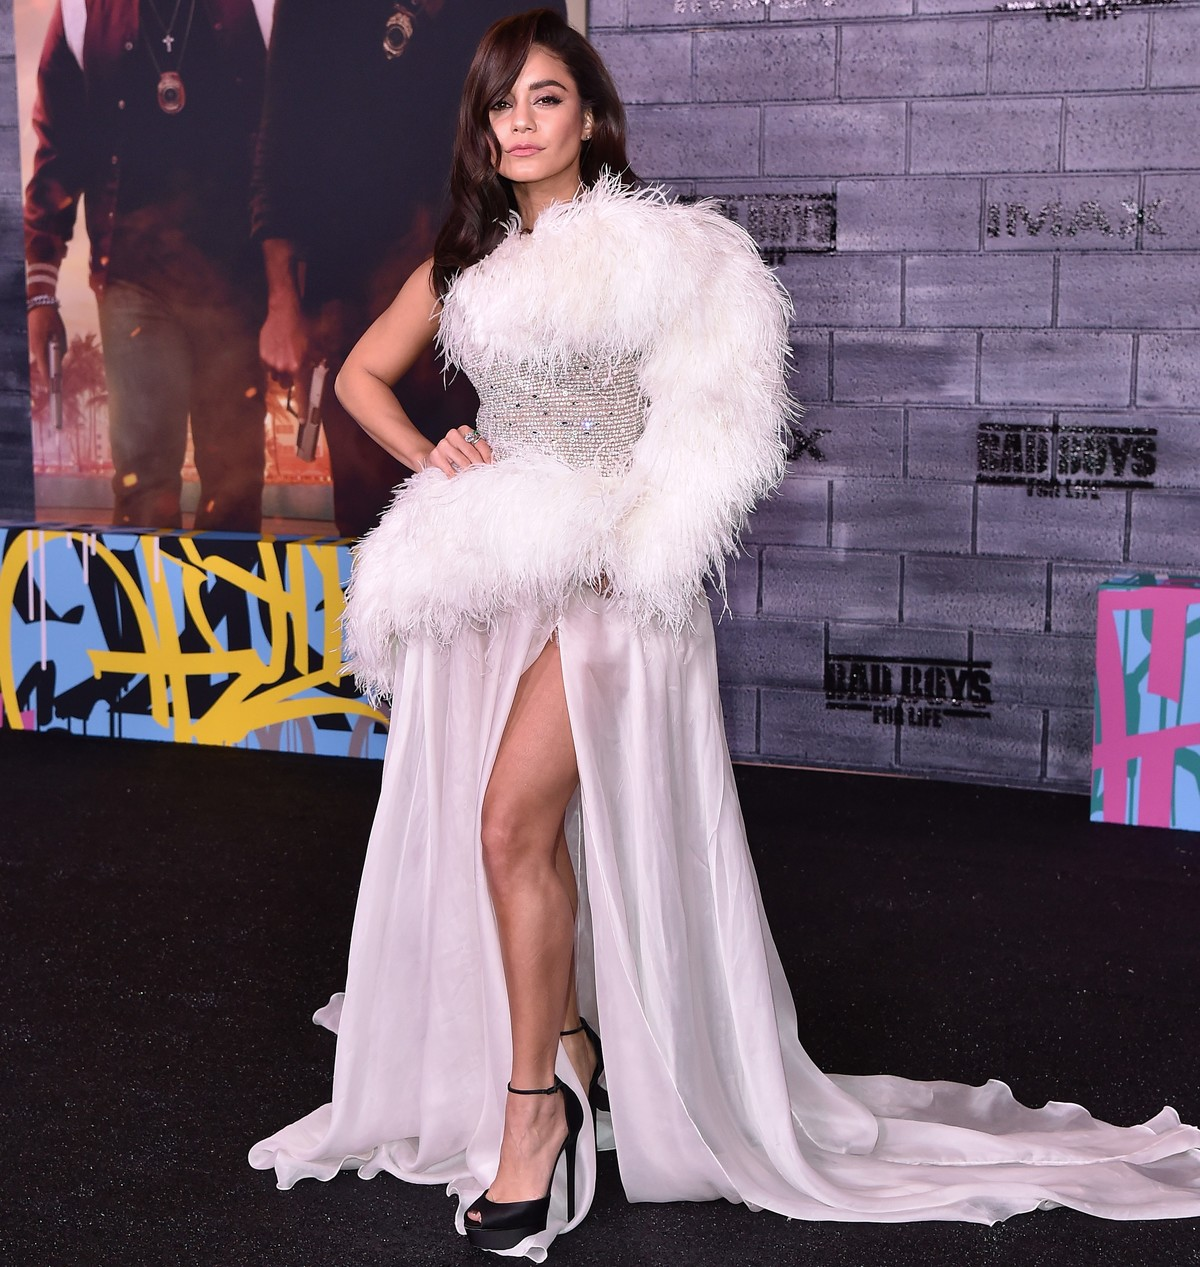 Vanessa Hudgens At The Bad Boys For Life Premiere